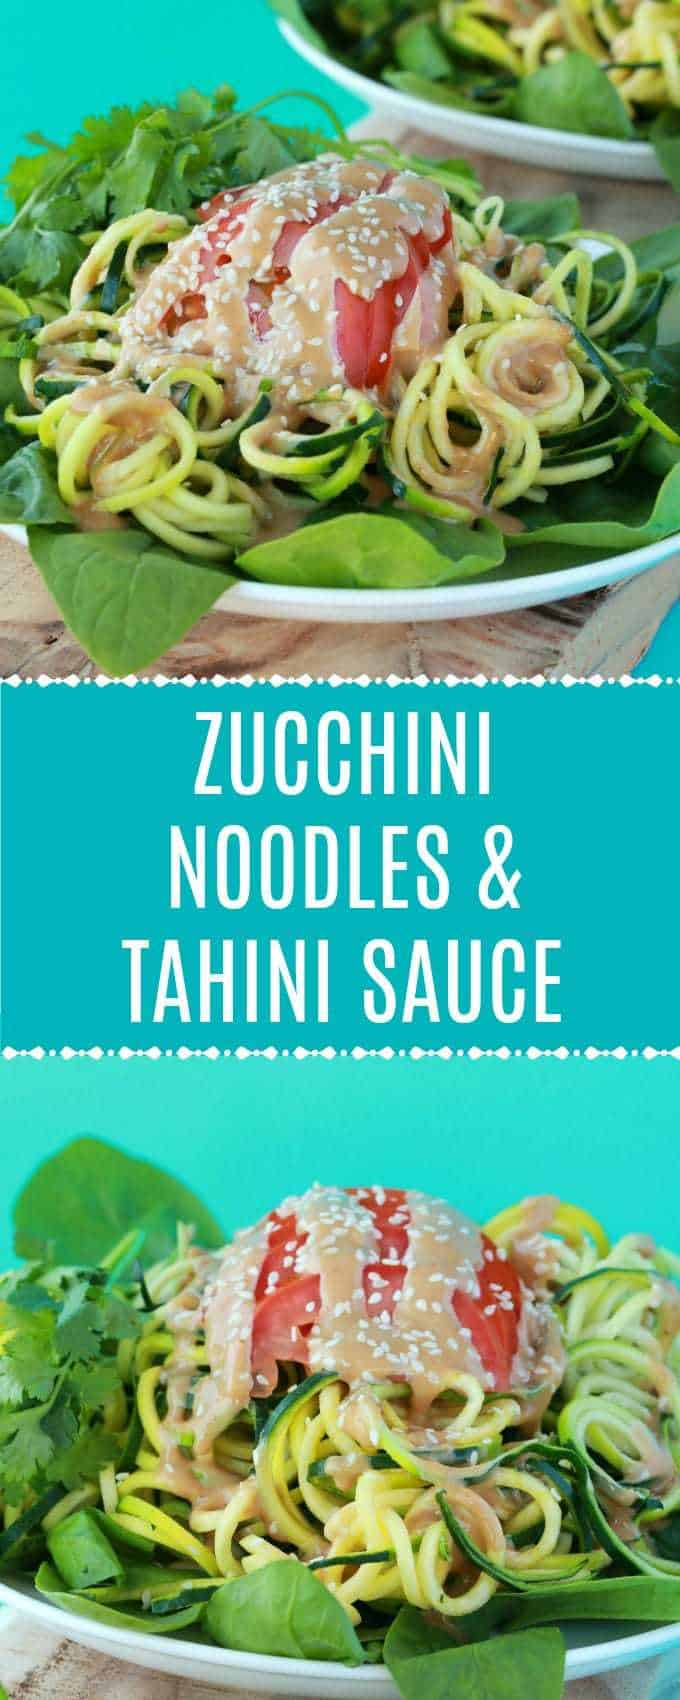 Fresh and delicious zucchini noodles topped with tahini sauce. This vibrant and colorful vegan meal is bursting with flavor and goodness! Raw and Gluten-Free. #vegan #lovingitvegan #zucchininoodles #rawvegan #glutenfree | lovingitvegan.com